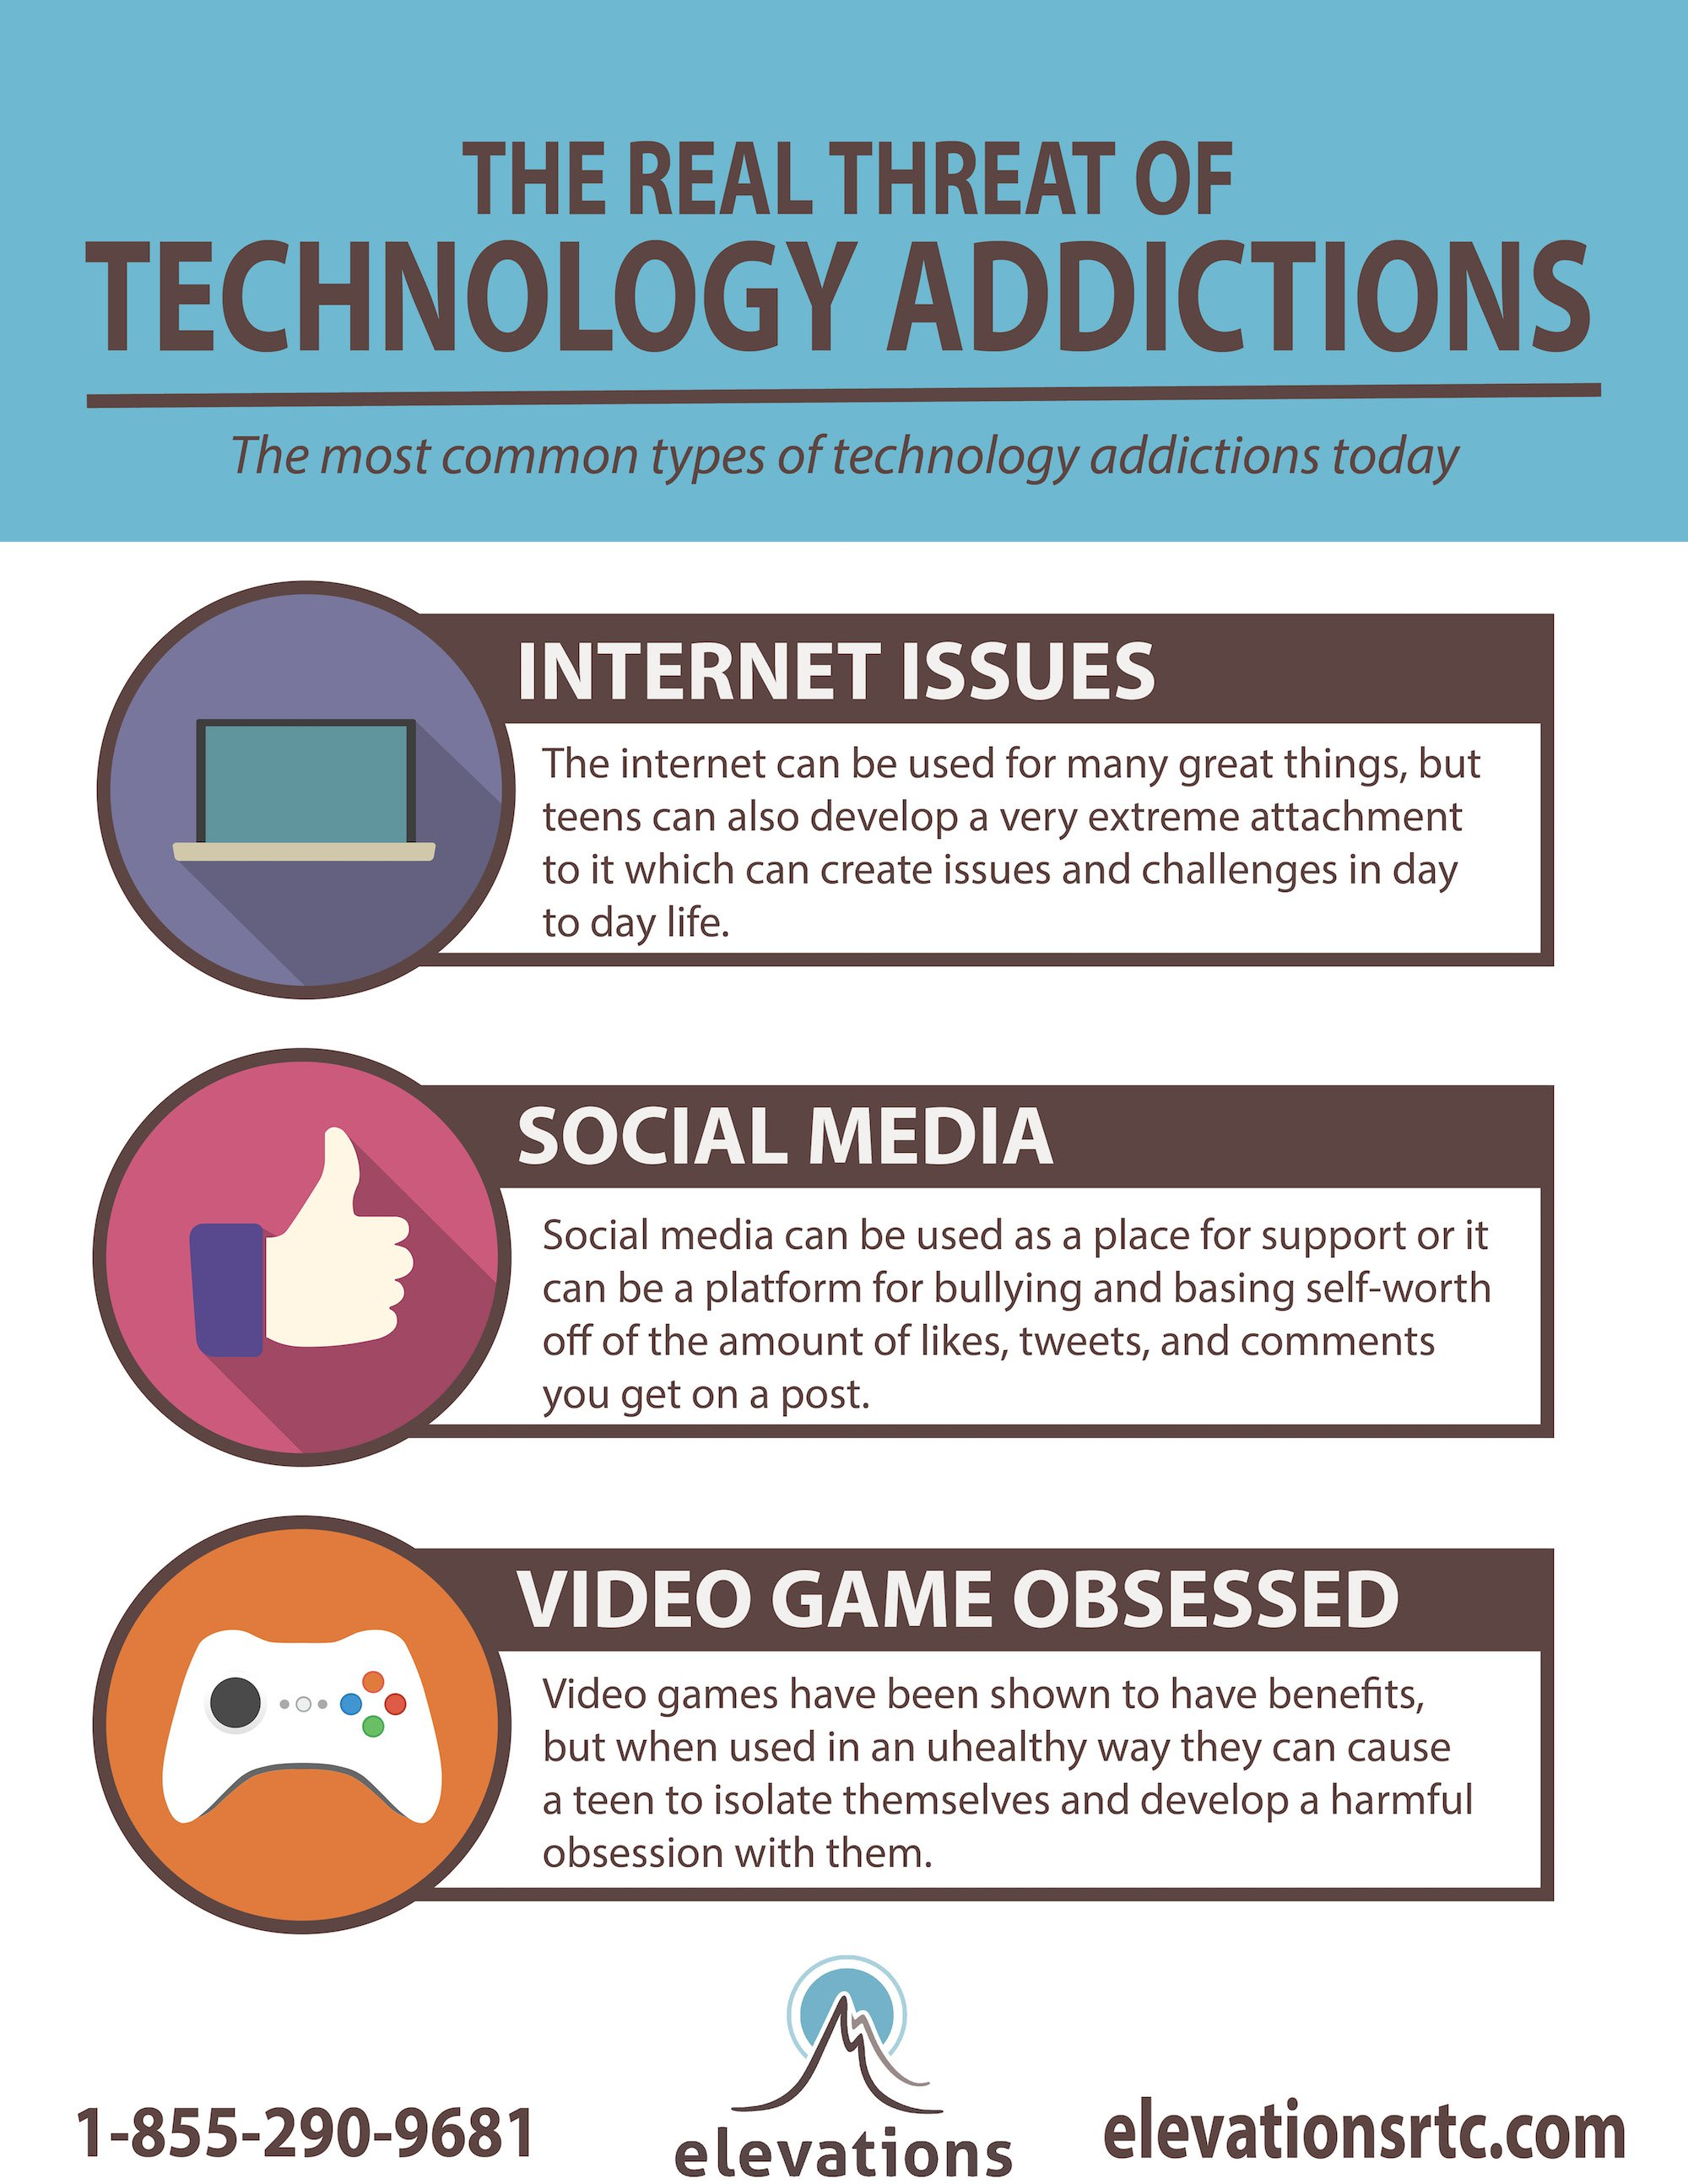 Technology Addiction Treatment: Social Media Can Fuel the Issue